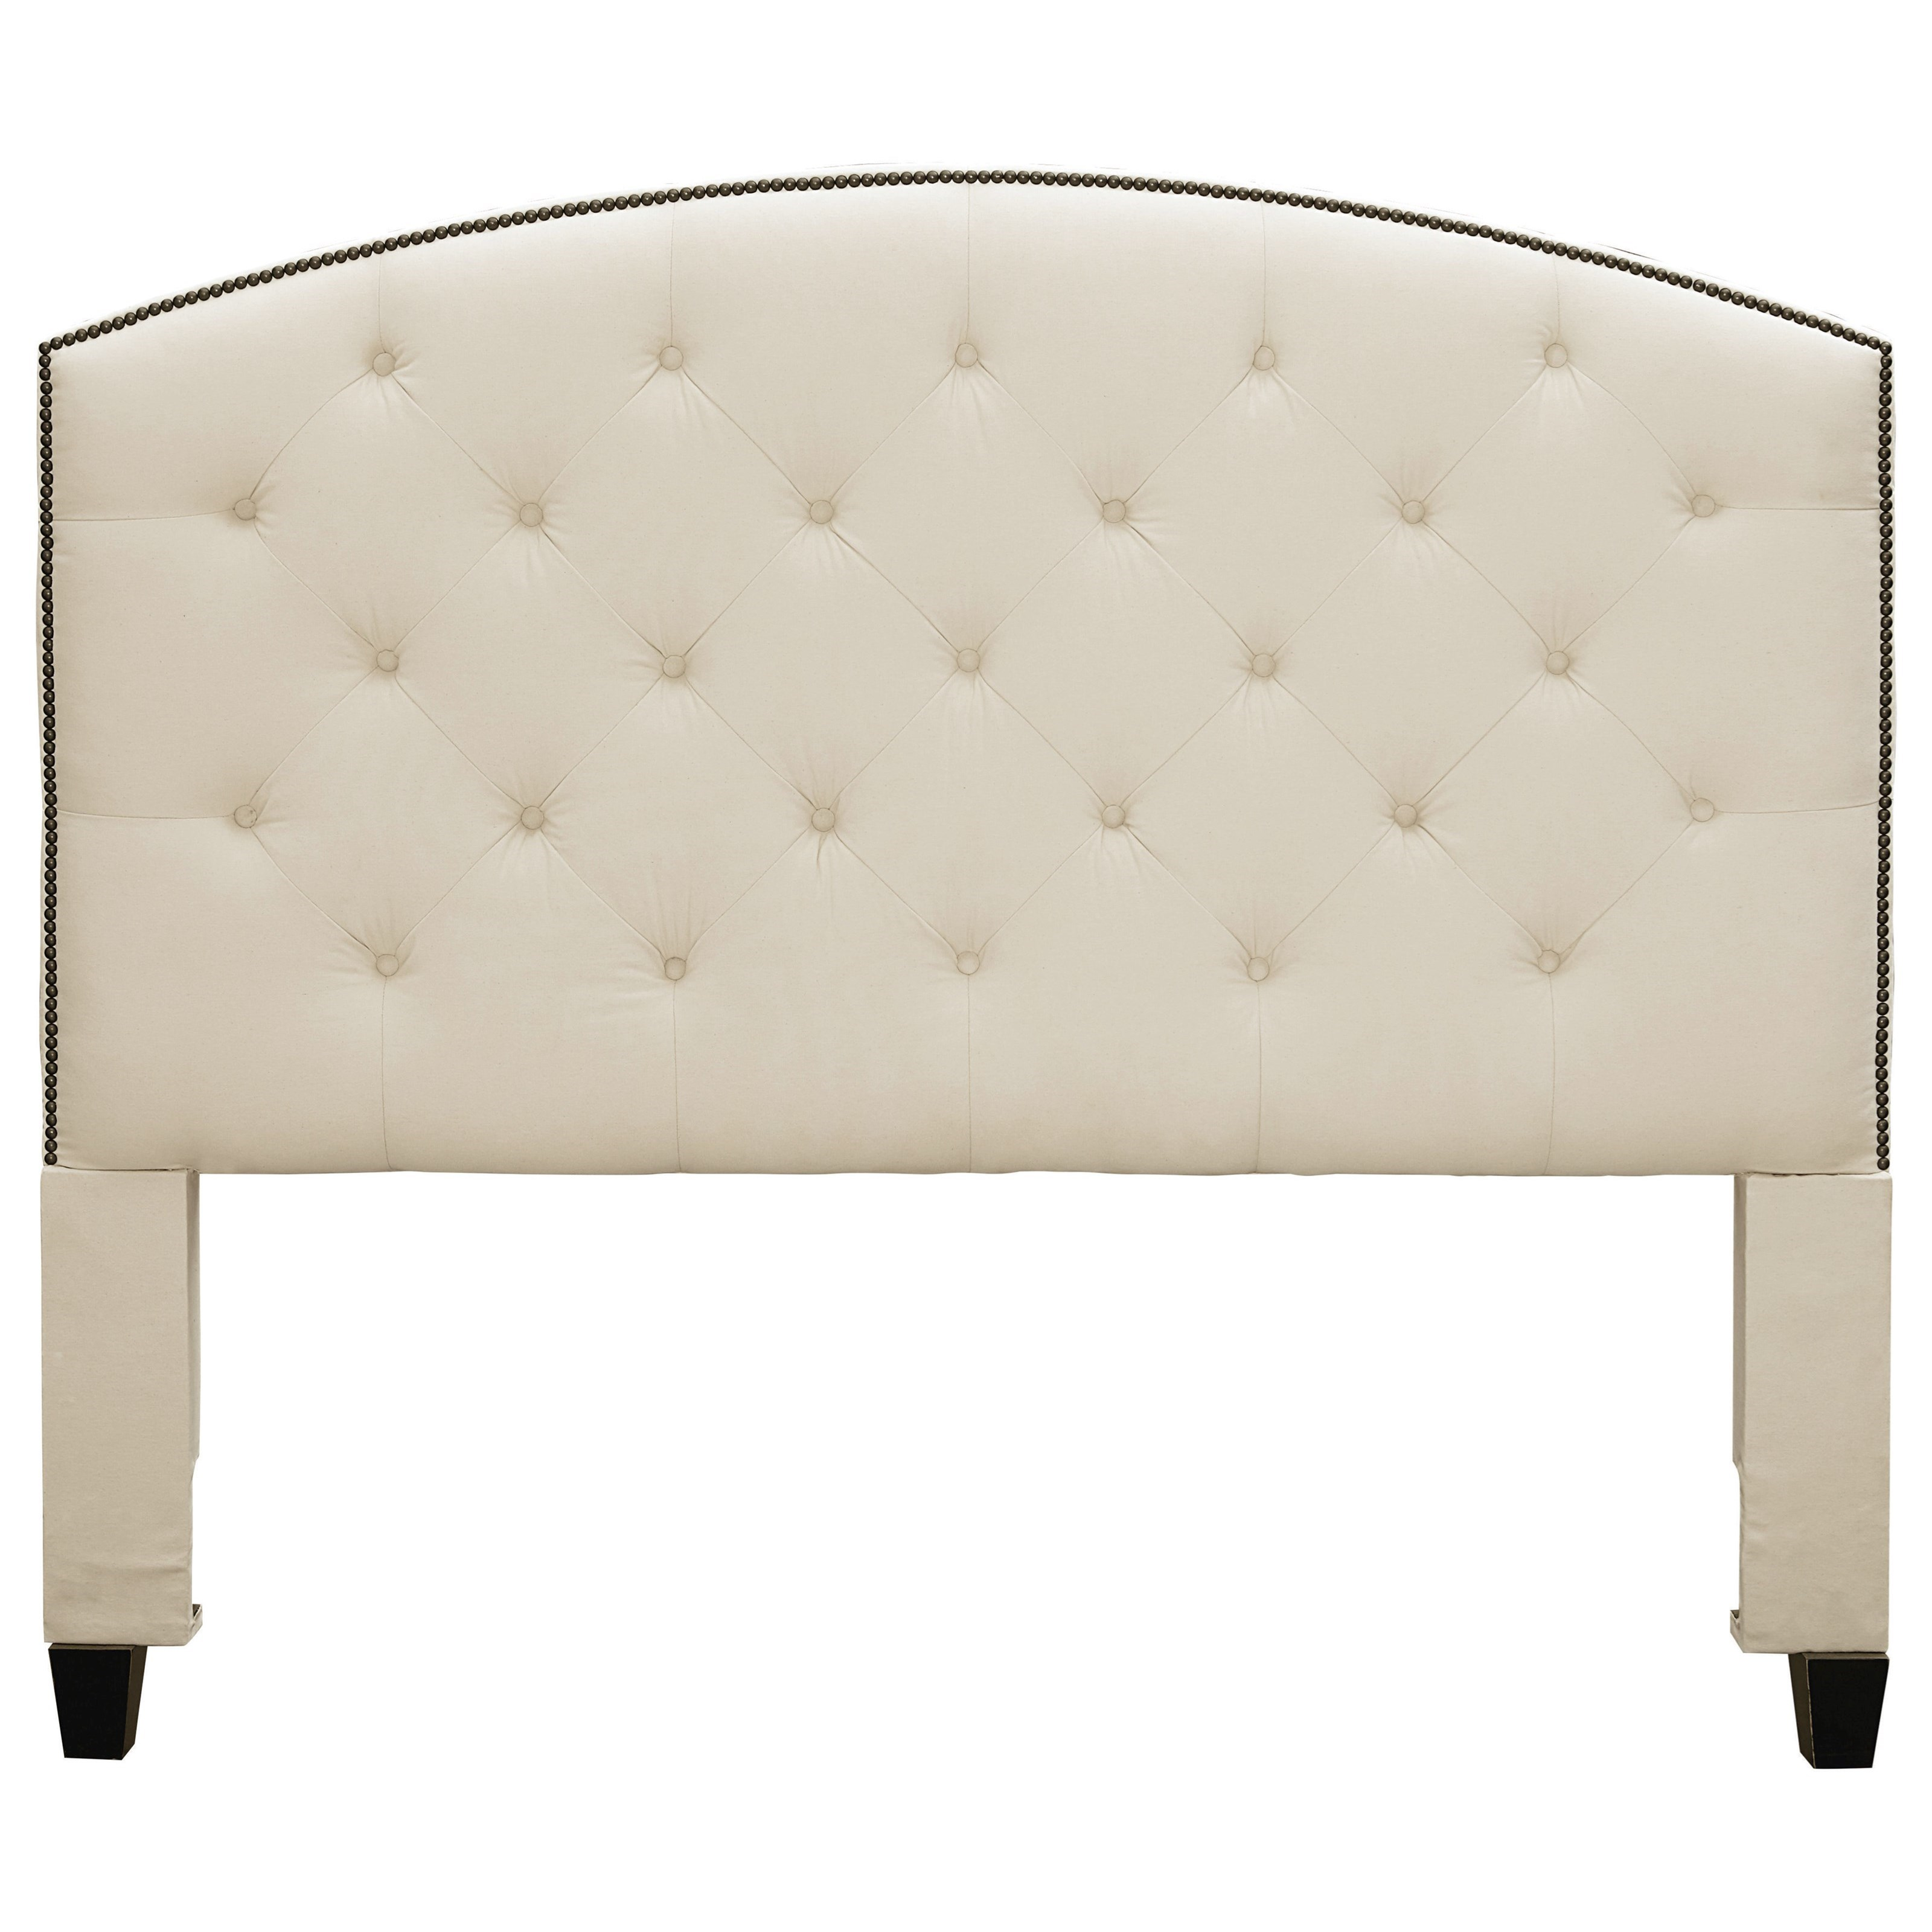 Savannah Upholstered Hdbd Twin by Bassett at Furniture Superstore - Rochester, MN